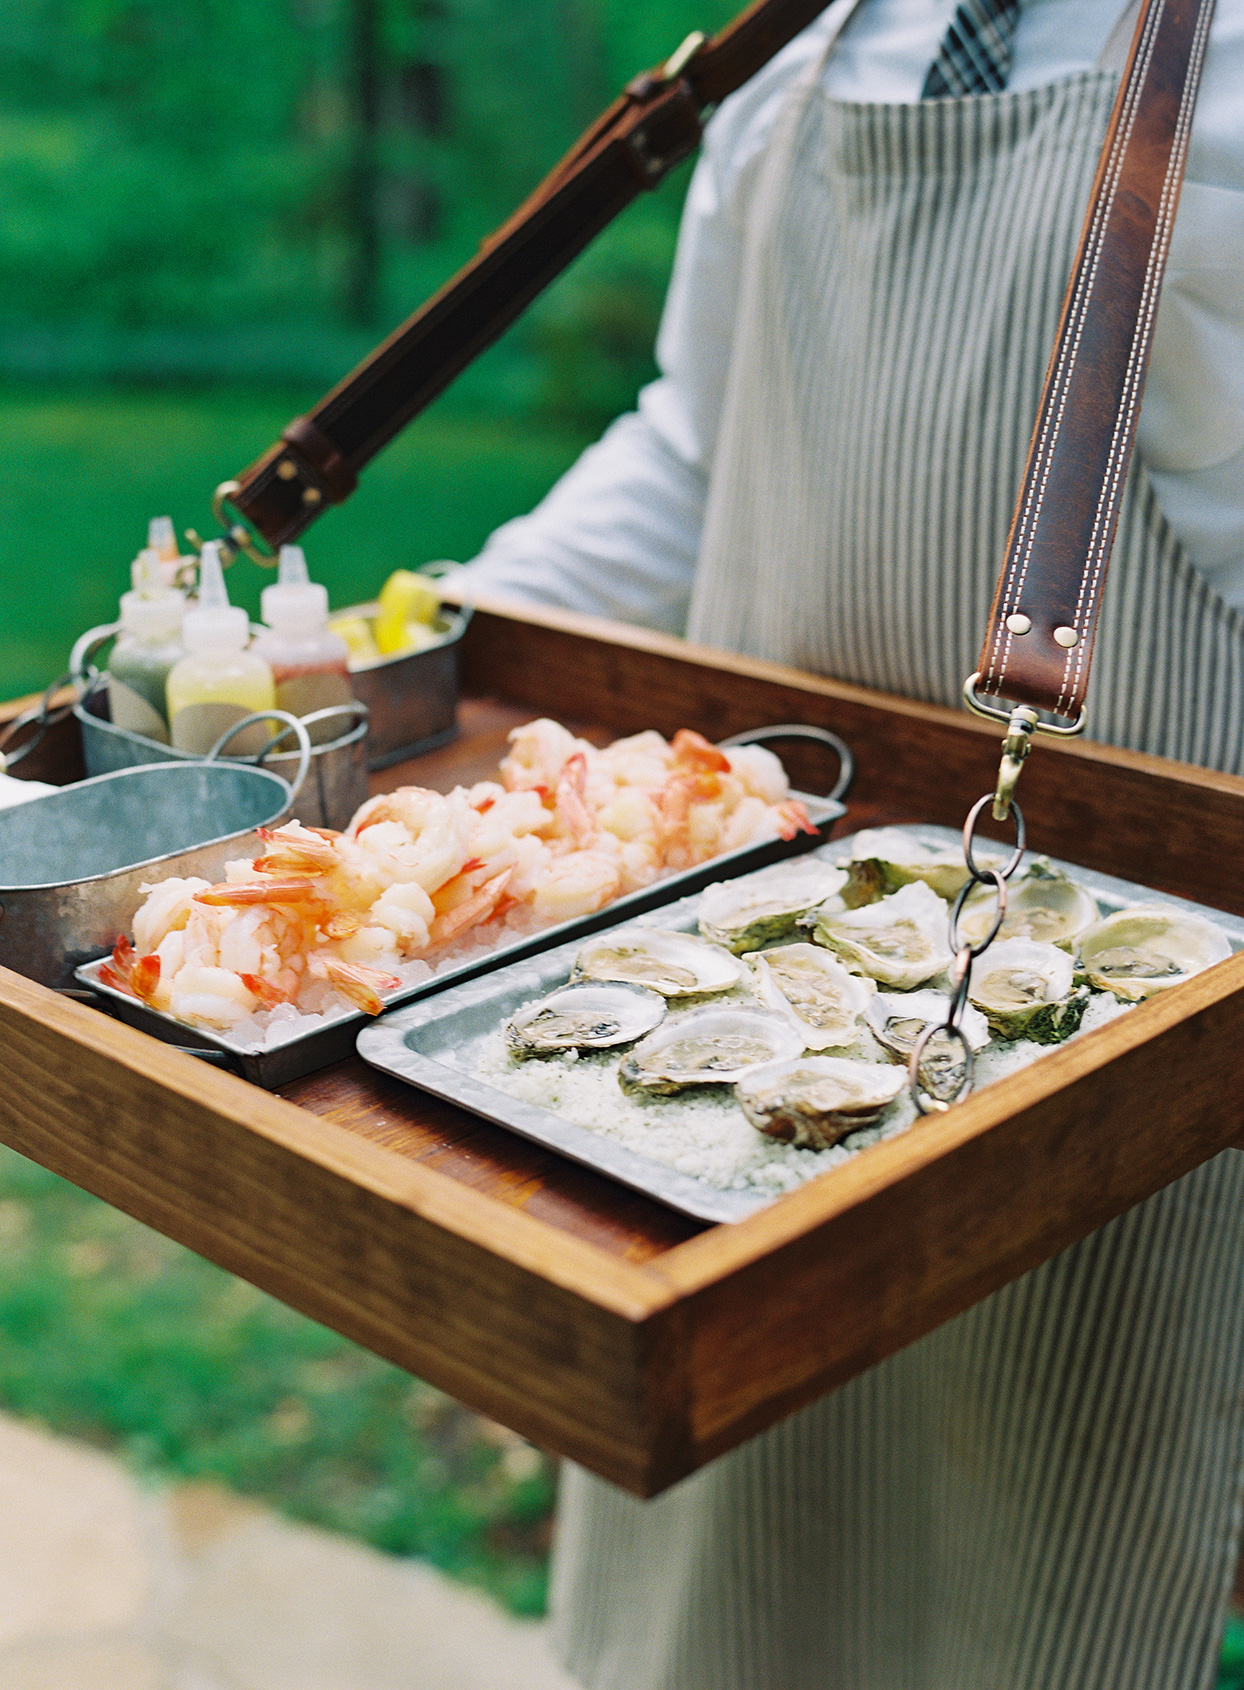 server carrying wedding appetizers of shrimp and oysters